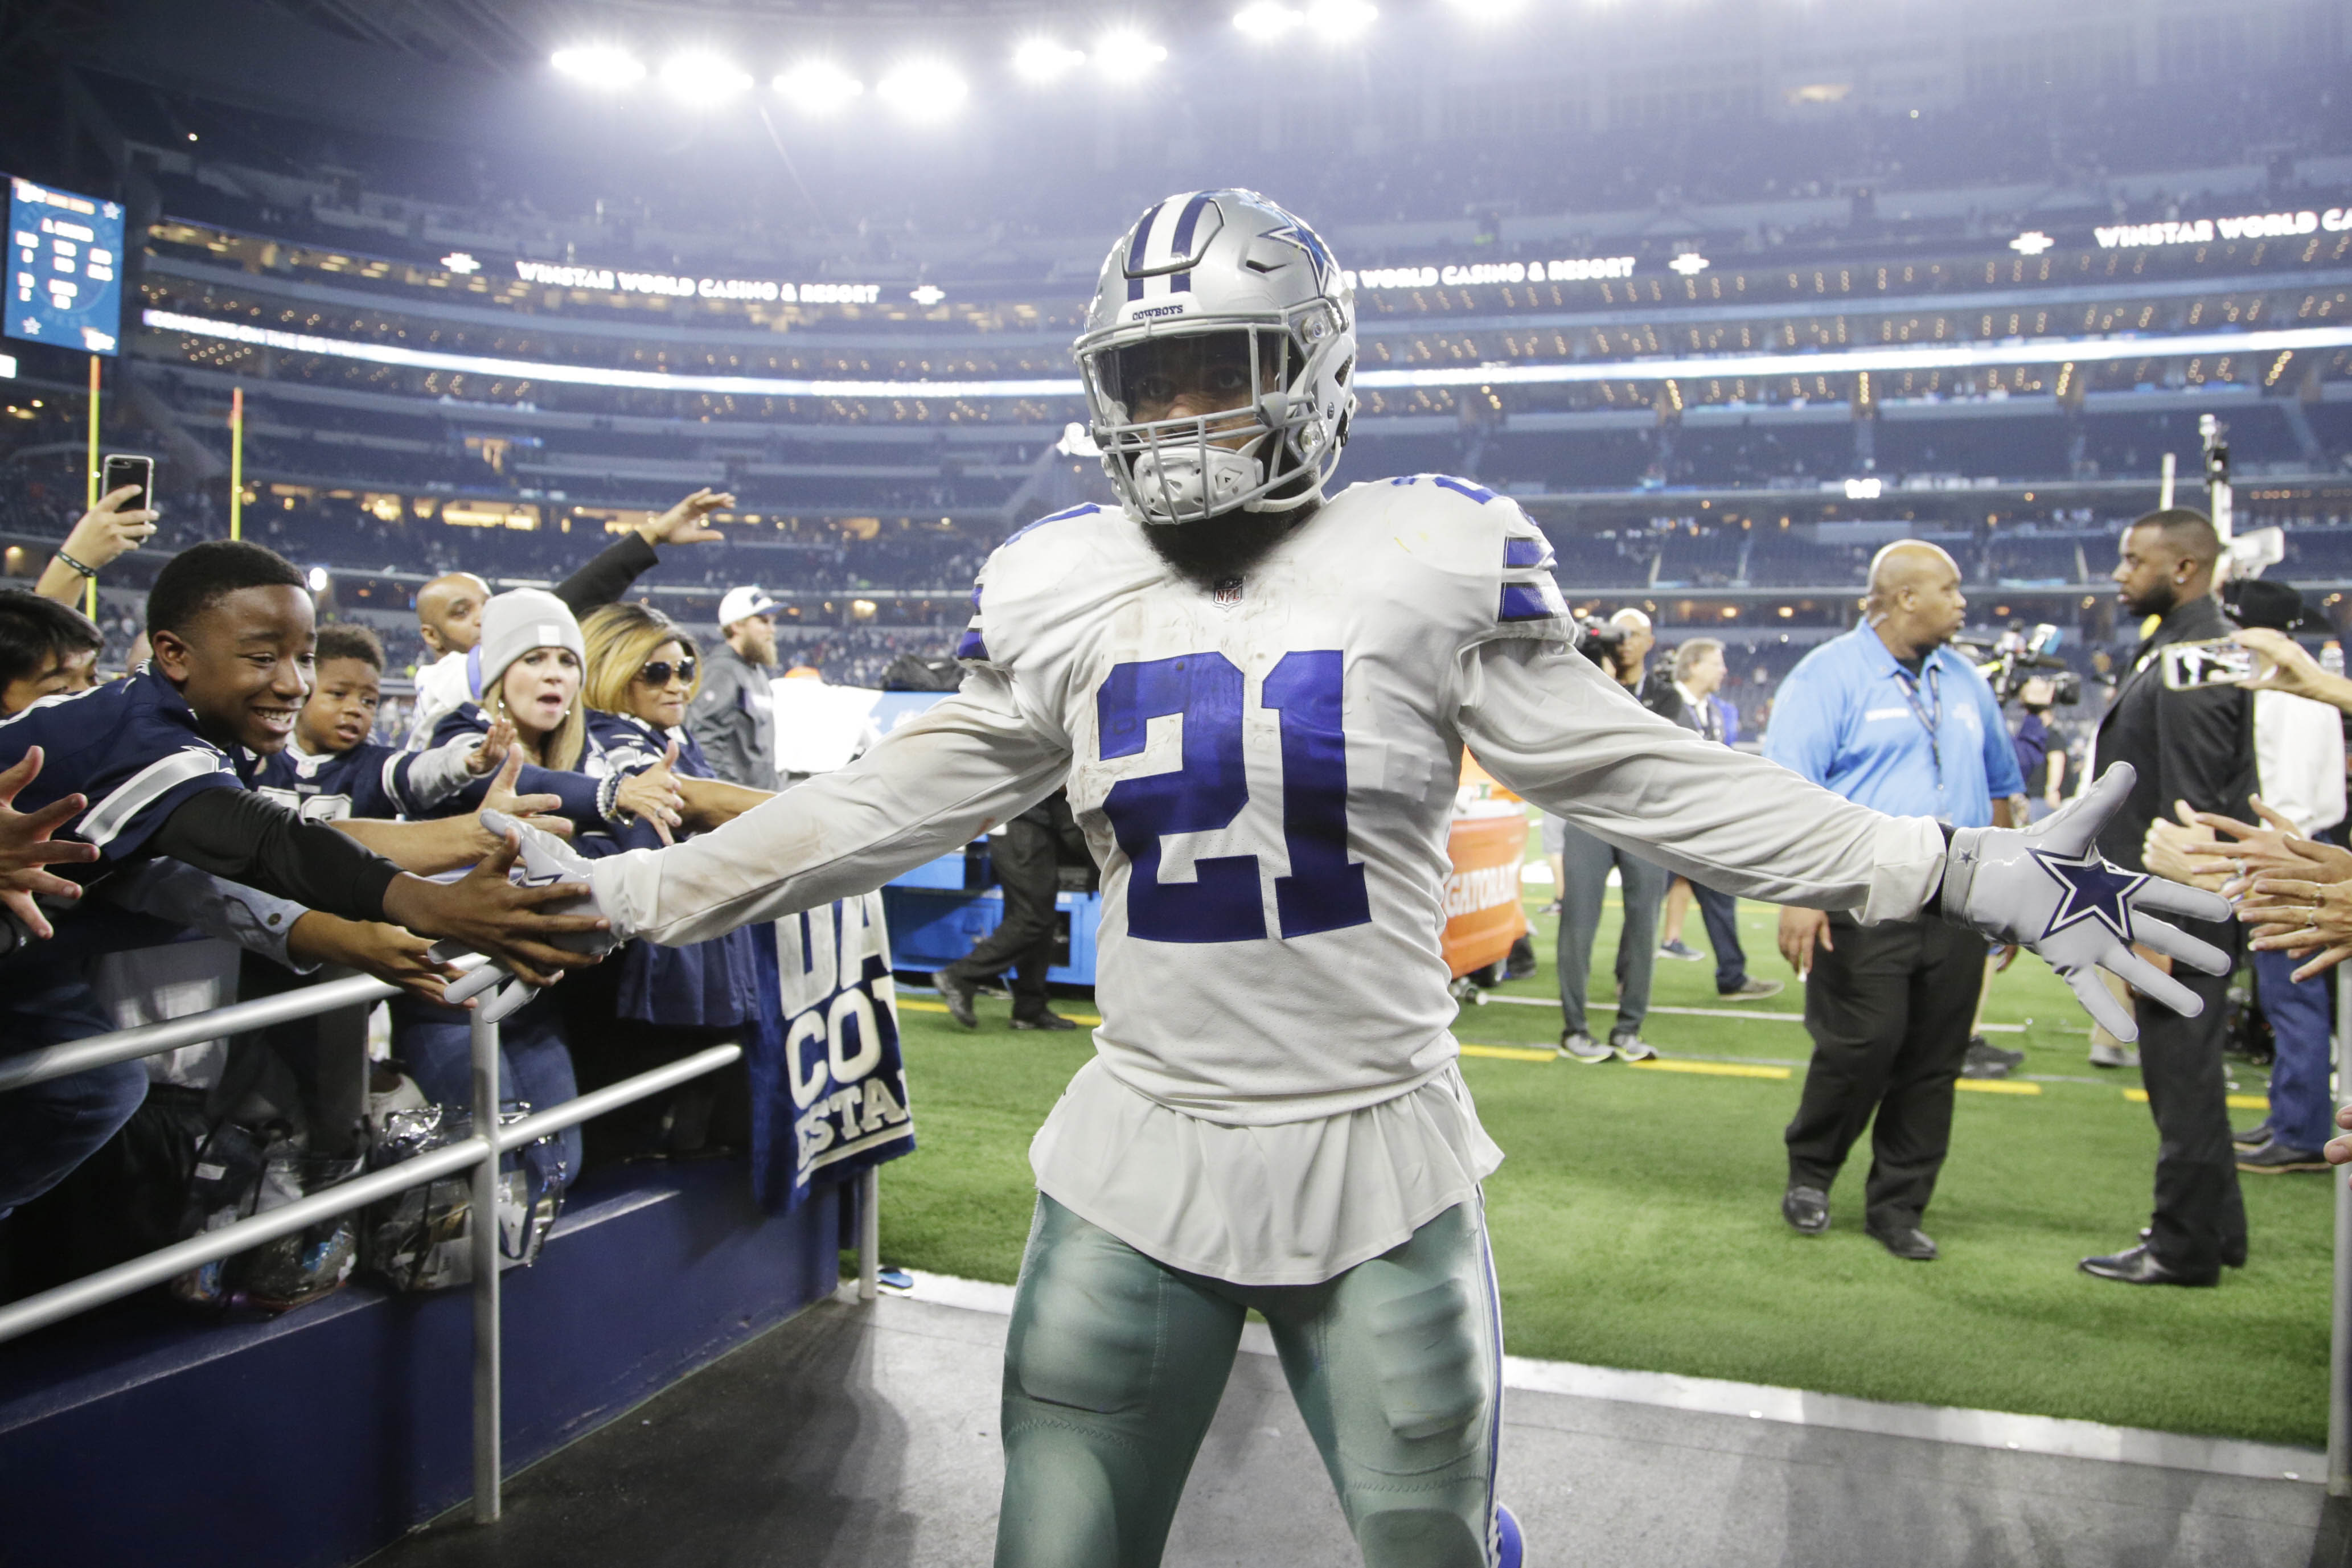 Nov 22, 2018; Arlington, TX, USA; Dallas Cowboys running back Ezekiel Elliott (21) is congratulated by fans as he leaves the field after the game against the Washington Redskins at AT&T Stadium. Mandatory Credit: Tim Heitman-USA TODAY Sports